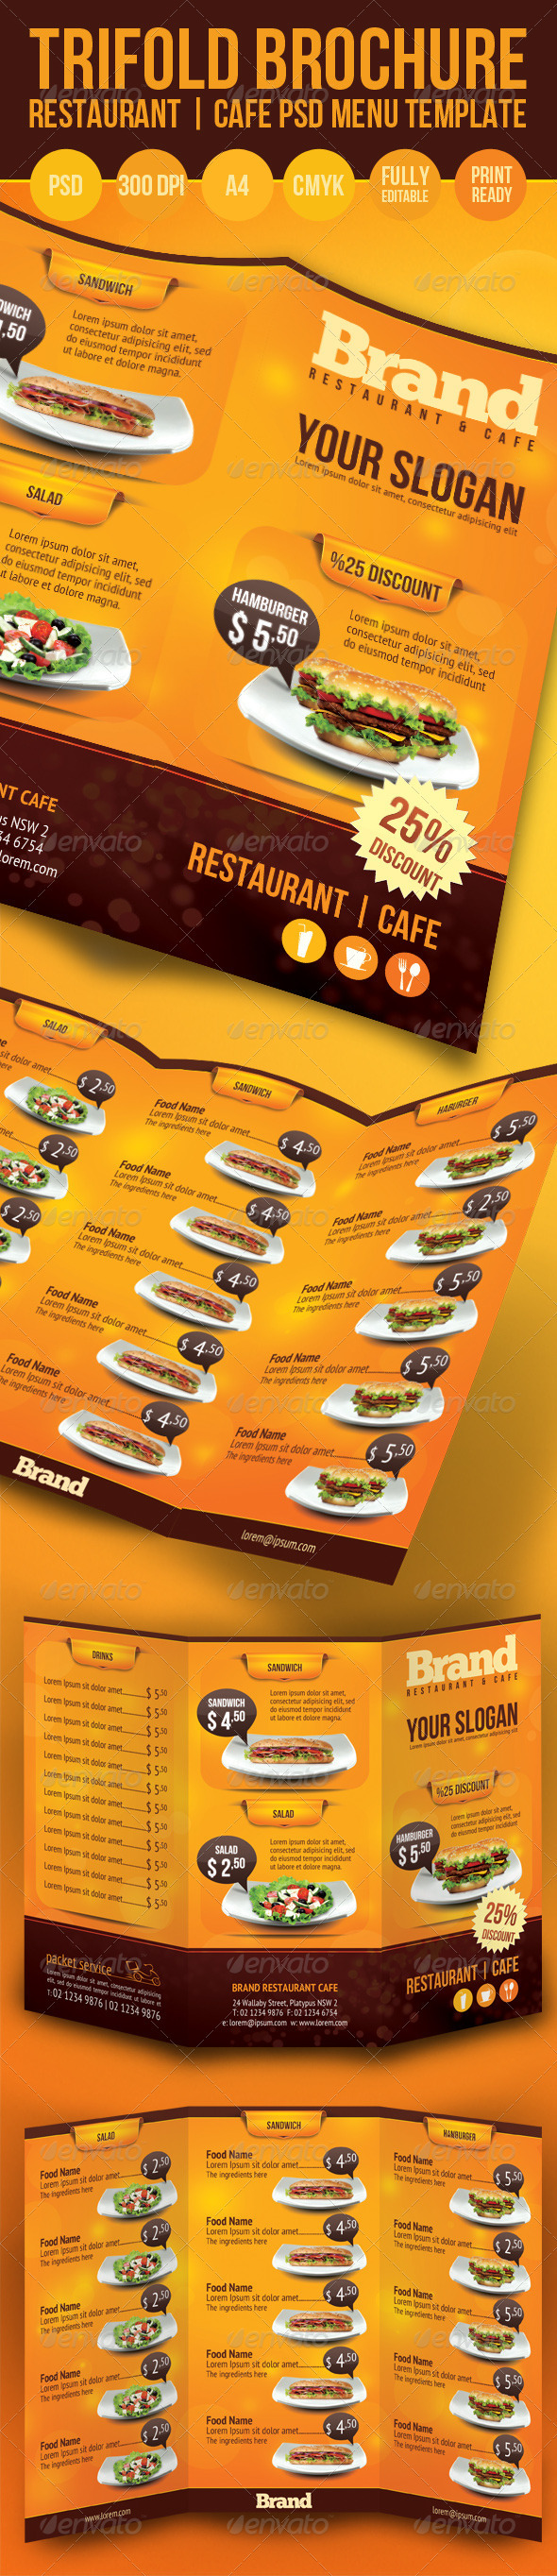 GraphicRiver Trifold Brochure Restaurant Cafe Menu PSD Template 1319270